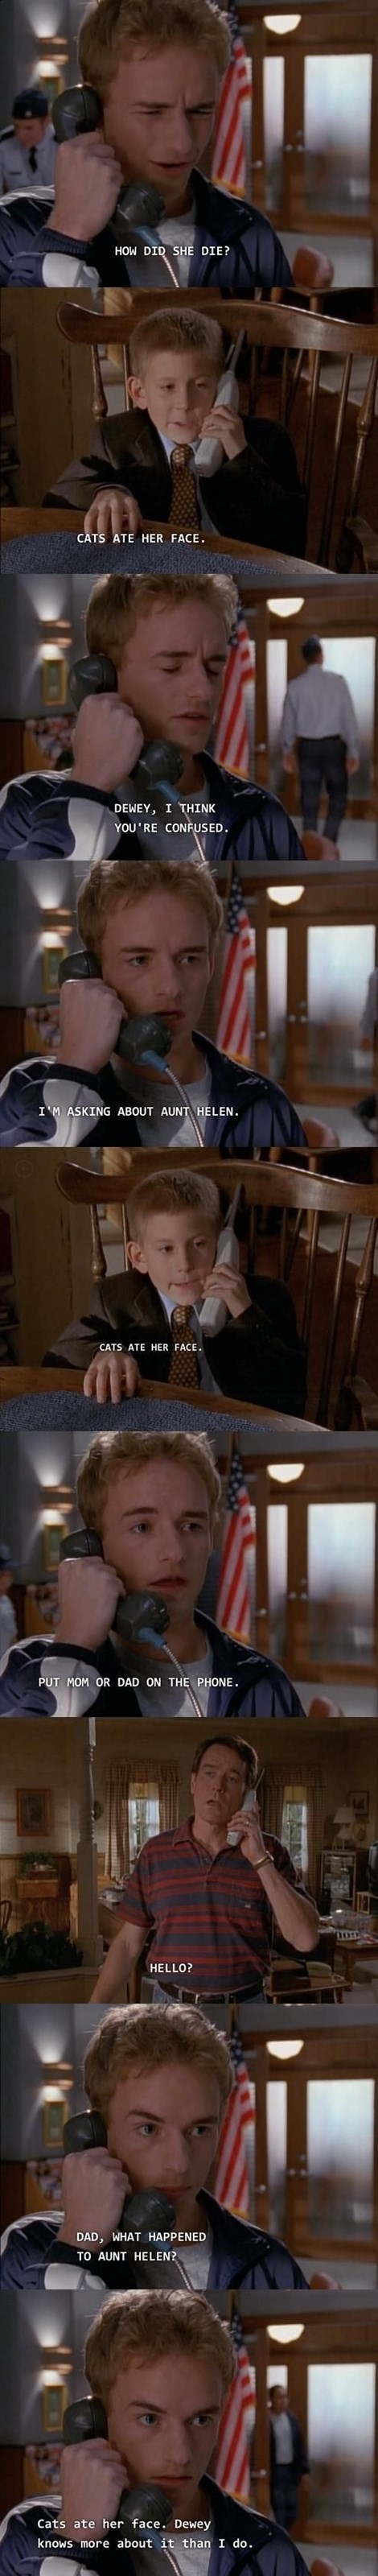 Cats malcolm in the middle TV - 8237964288